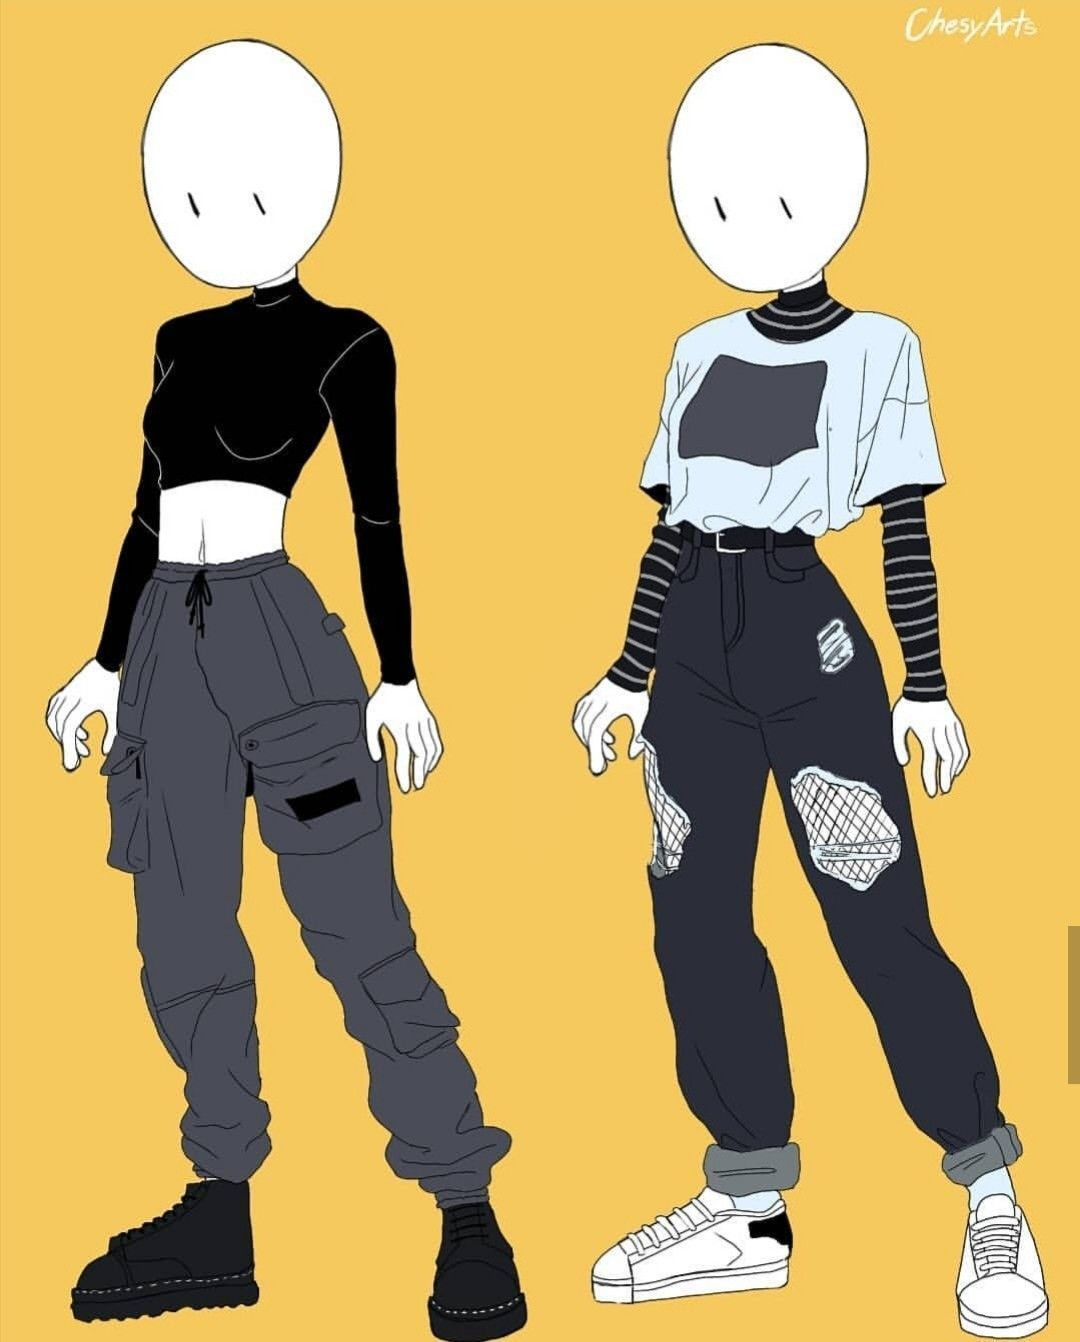 Anime Clothes In 2020 Drawing Anime Clothes Fashion Design Drawings Clothing Sketches